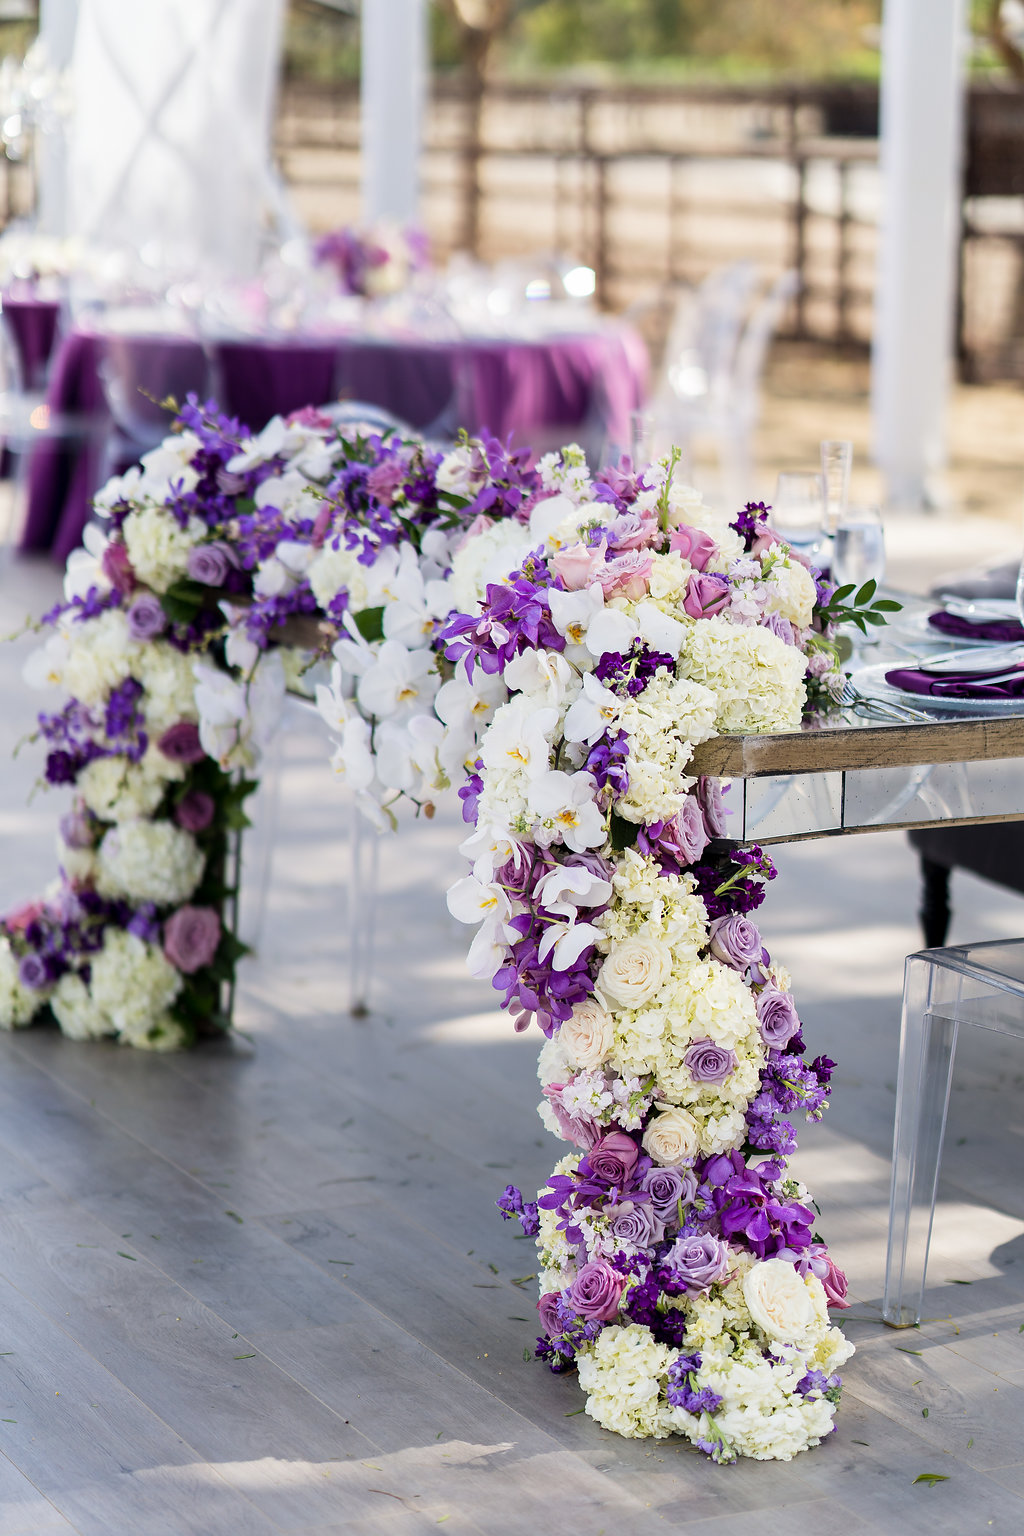 Brian Leahy Photo | Michelle Garibay Events | Luxury Temecula Wedding | La La Land Purple Wedding | Hollywood Glam Wedding | Lush Floral Garland | Soiree Floral Design